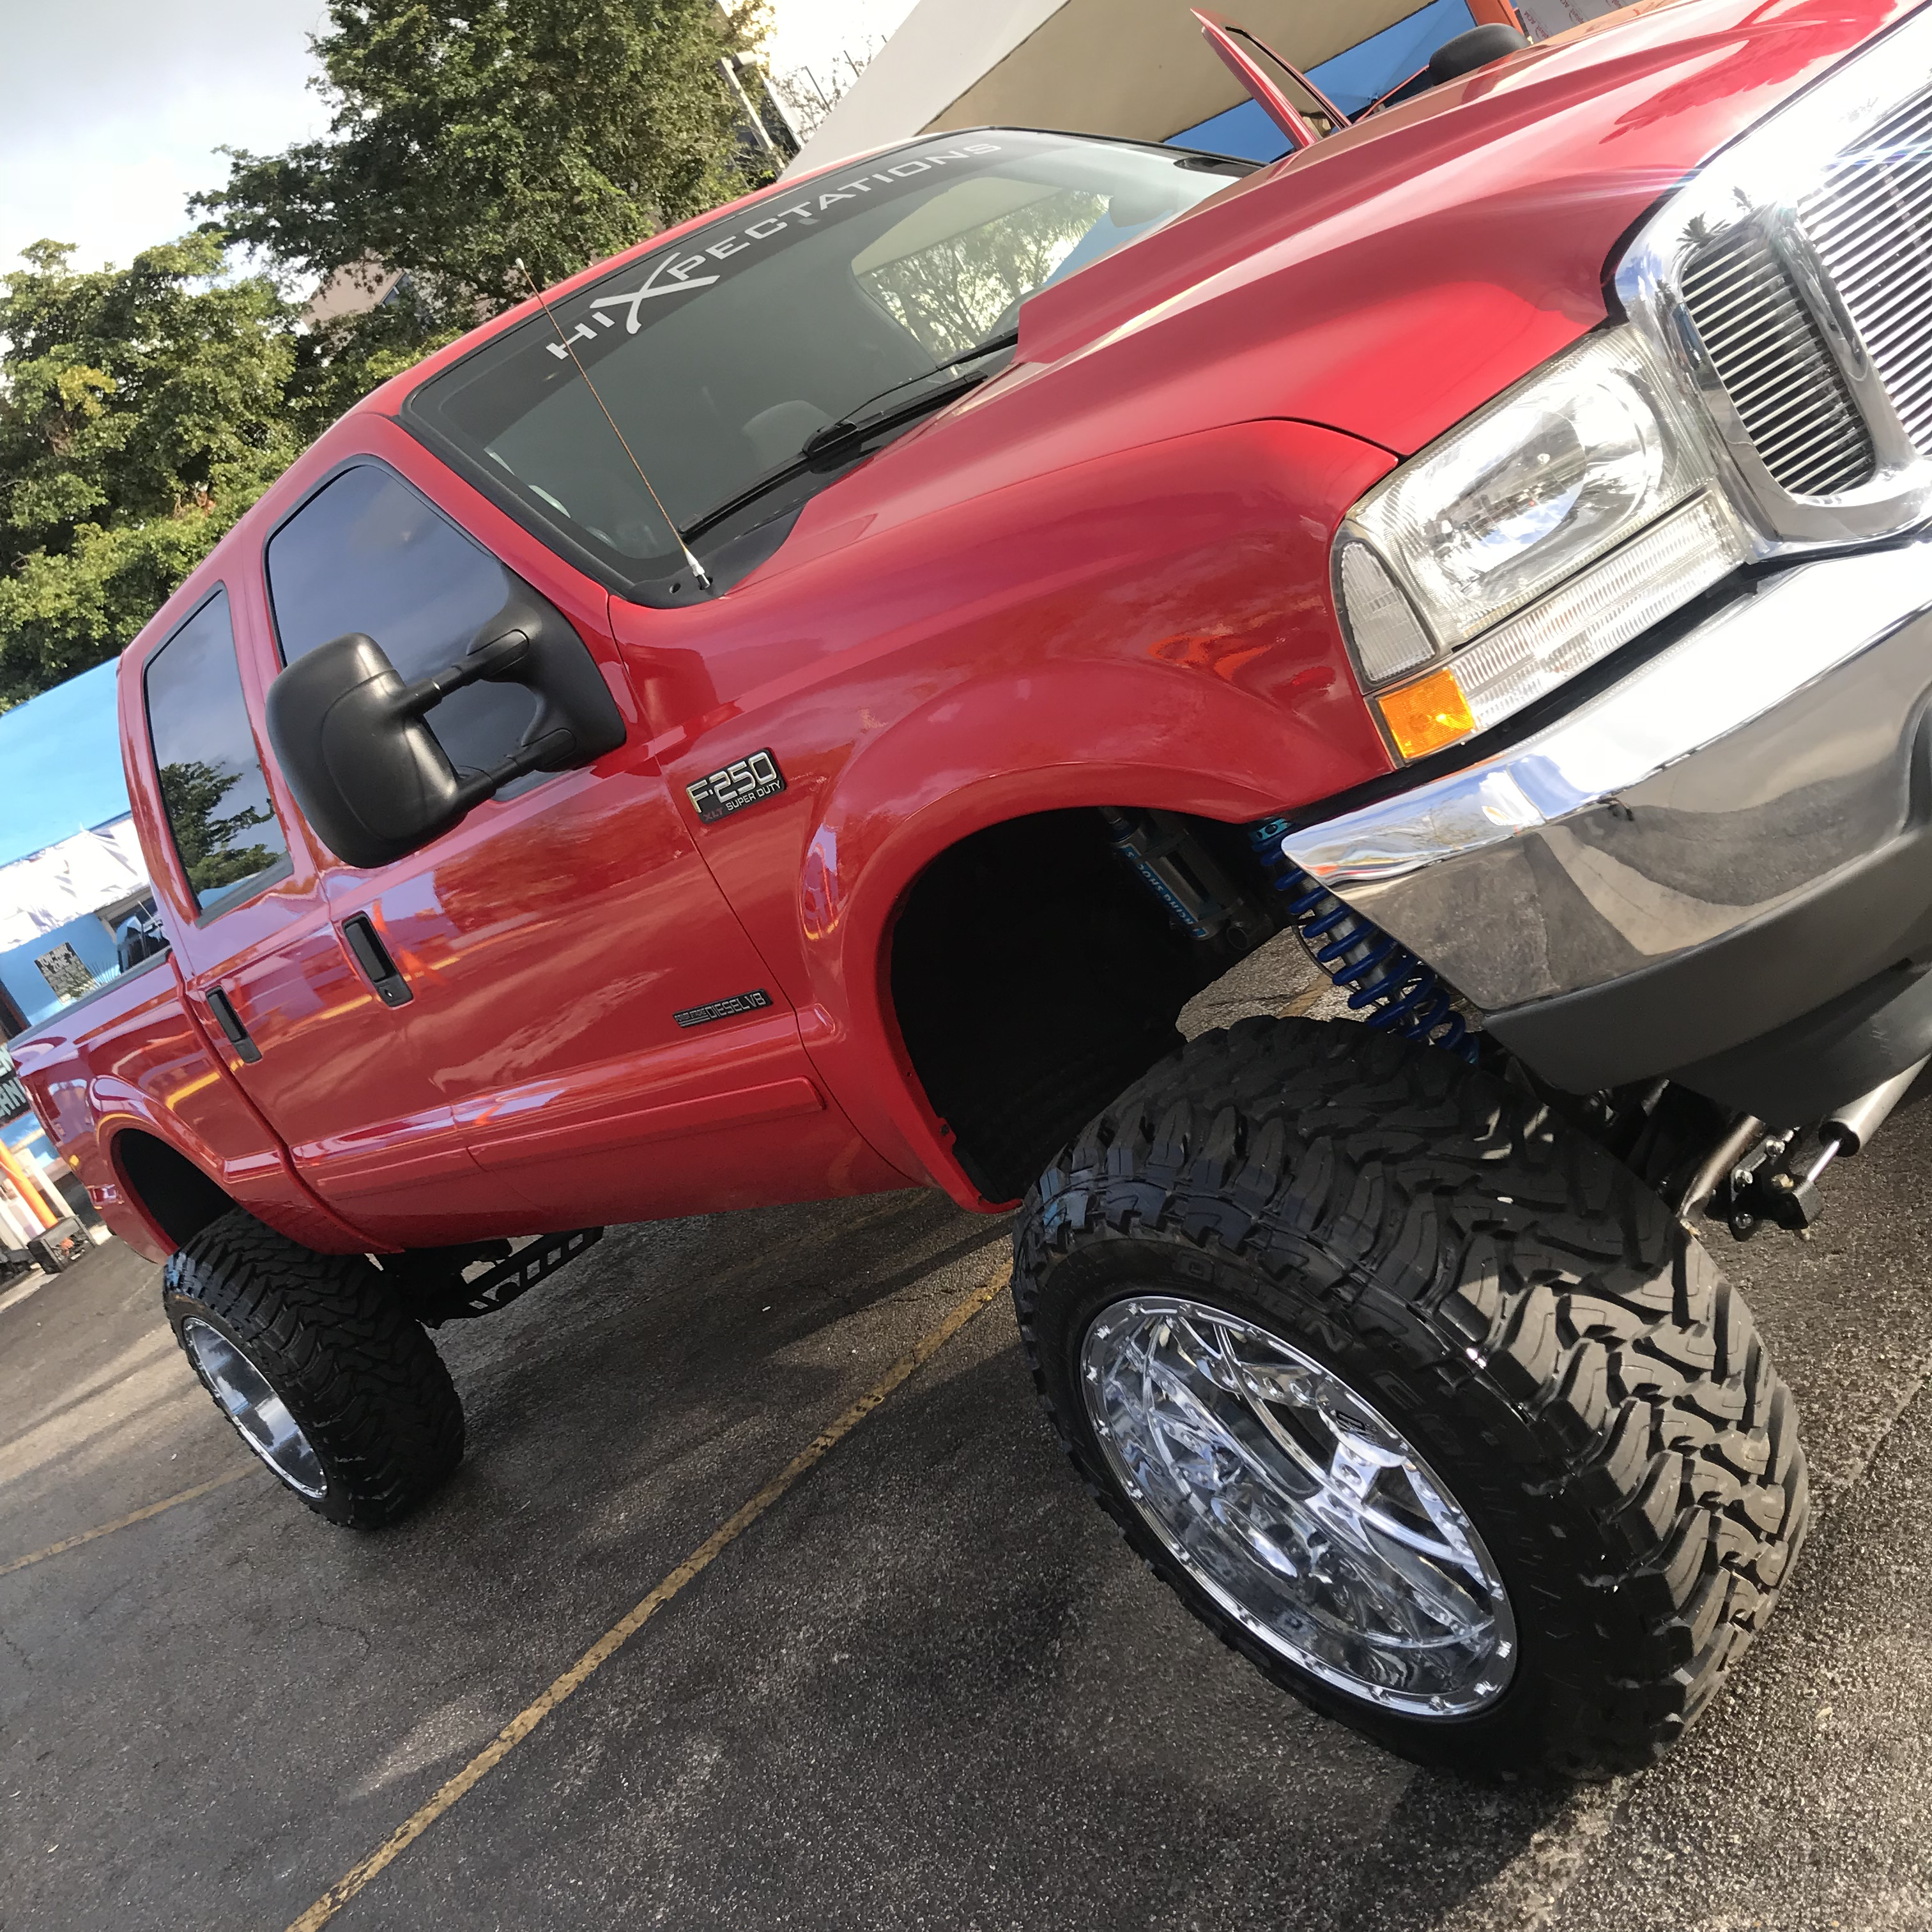 Truck detailing service in MIami with steamer